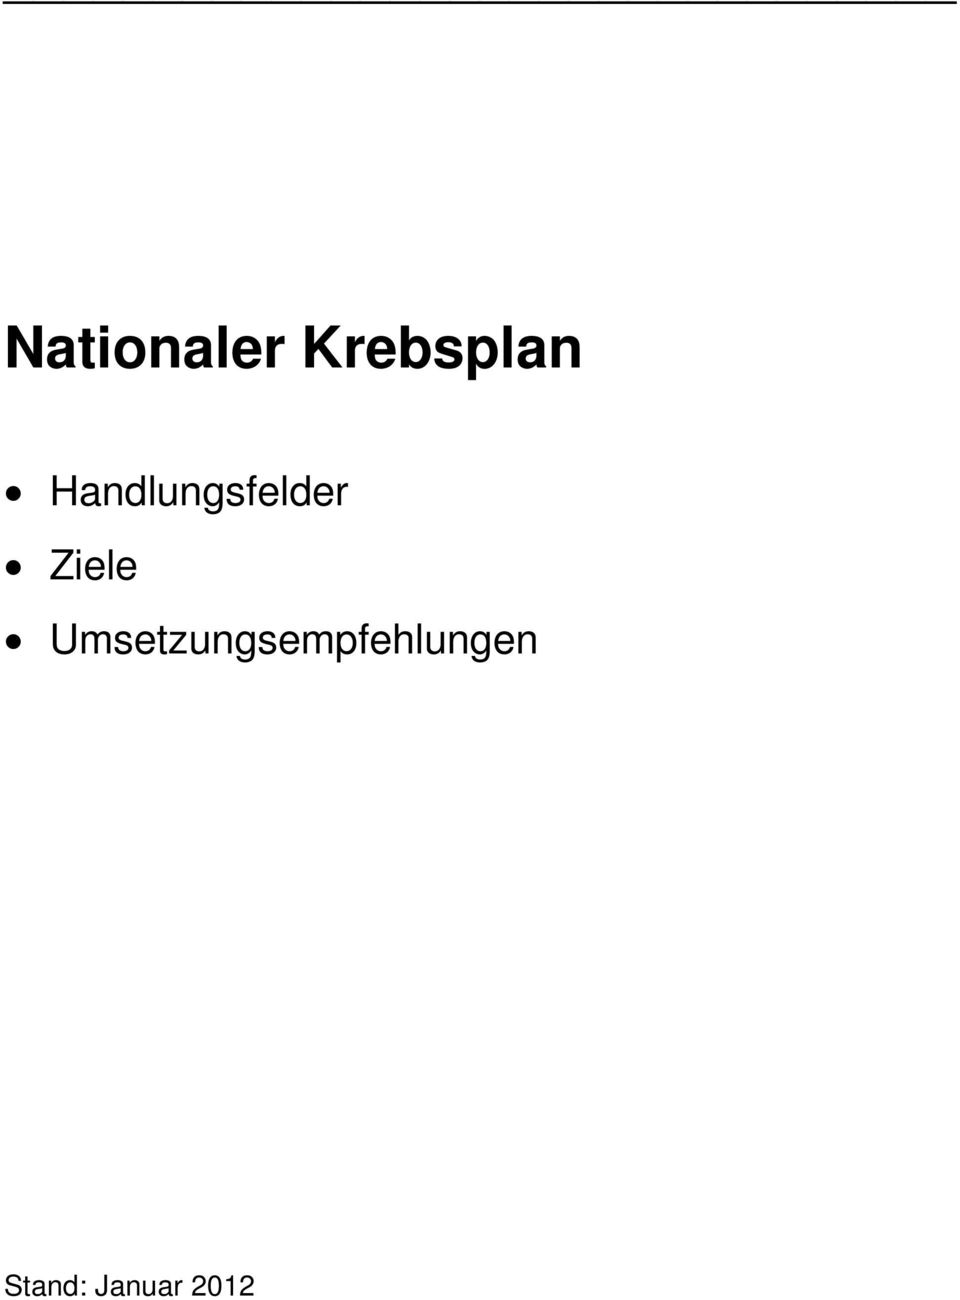 nationaler krebsplan pdf